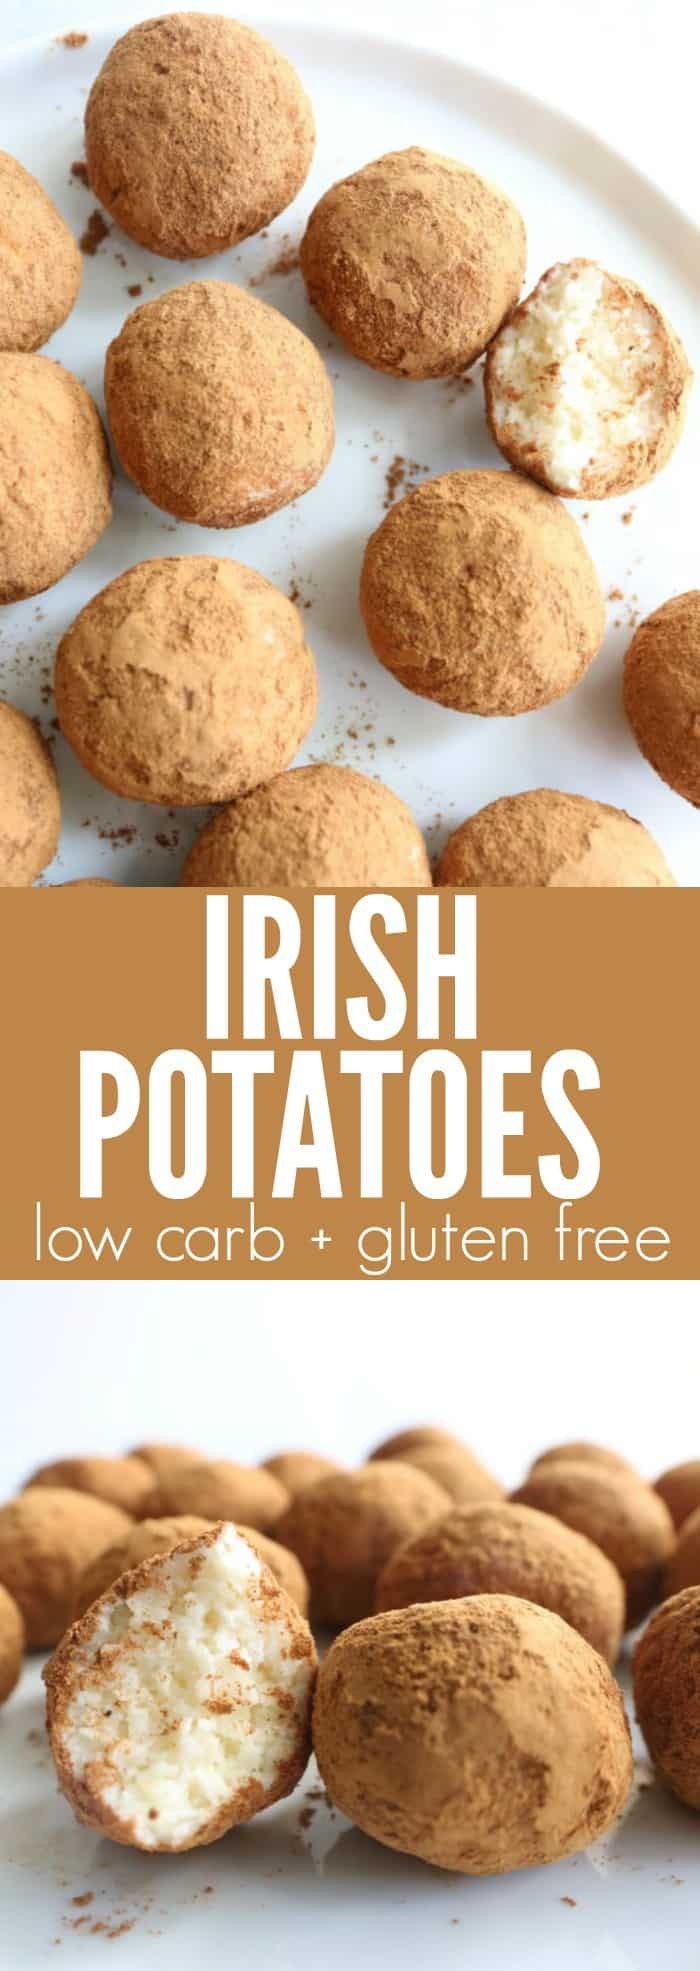 You'll love these low carb + gluten free Skinny Irish Potatoes!! They're such a fun, lightened up version of my favorite childhood St. Patrick's Day treat!! thetoastedpinenut.com #lowcarb #glutenfree #dessert #stpatricksday